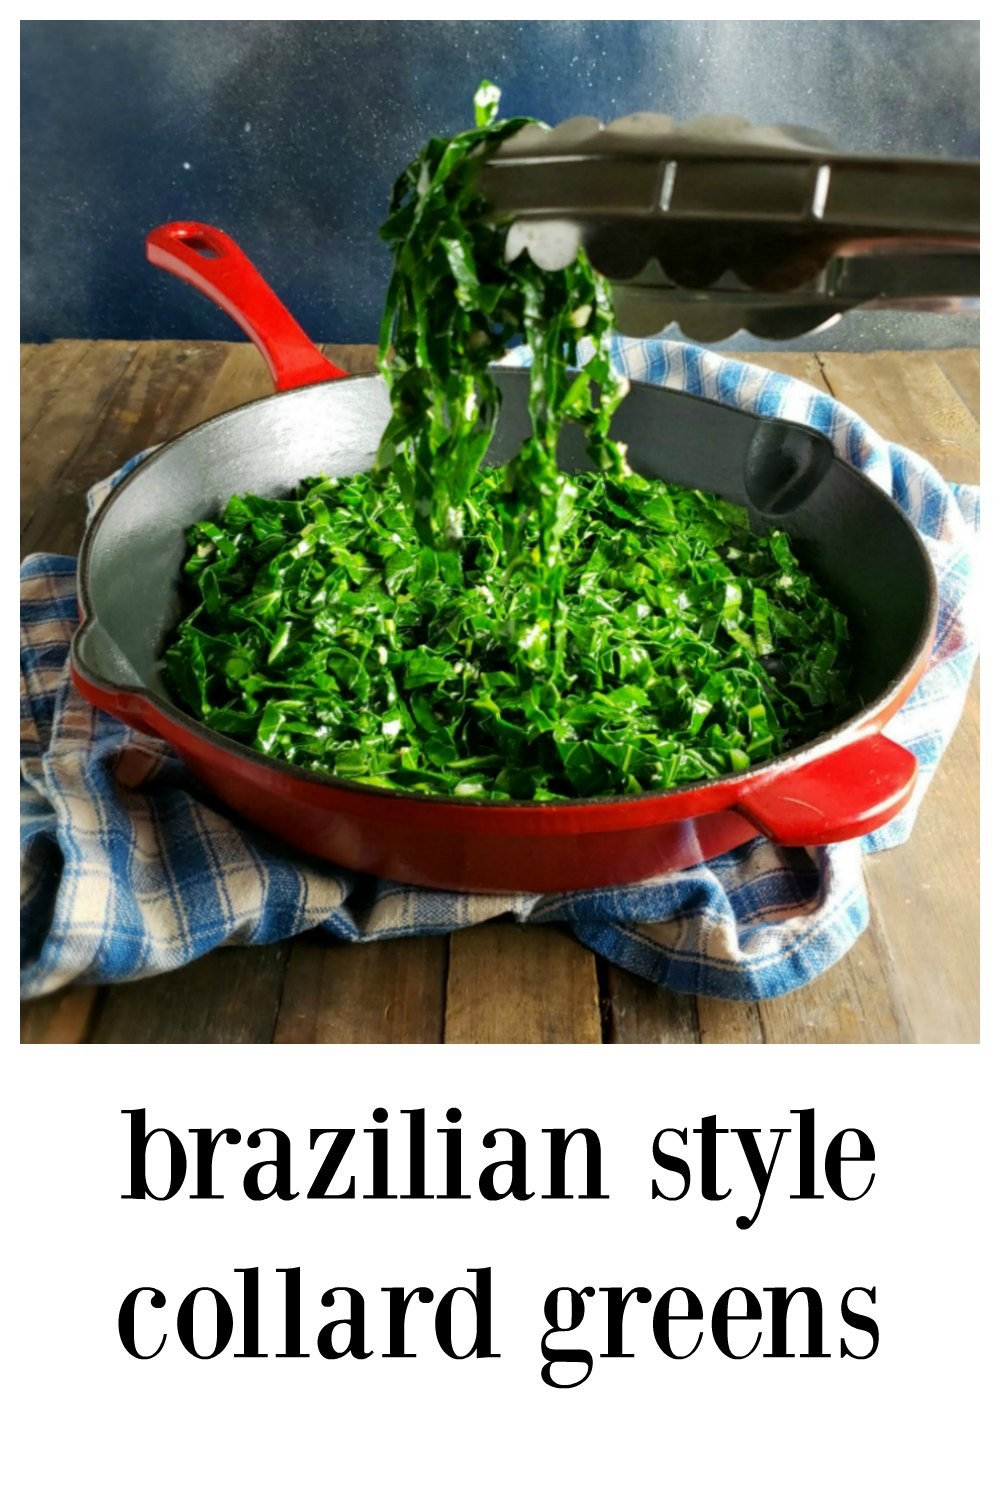 Brazilian Style Collard Greens are gorgeous ribbons garlicky deliciousness! Fresh, fast & fabulous, done in minutes & a great side for meat or fish. #CollardGreens #BrazilianCollardGreens #Couve #BrazilianRecipe